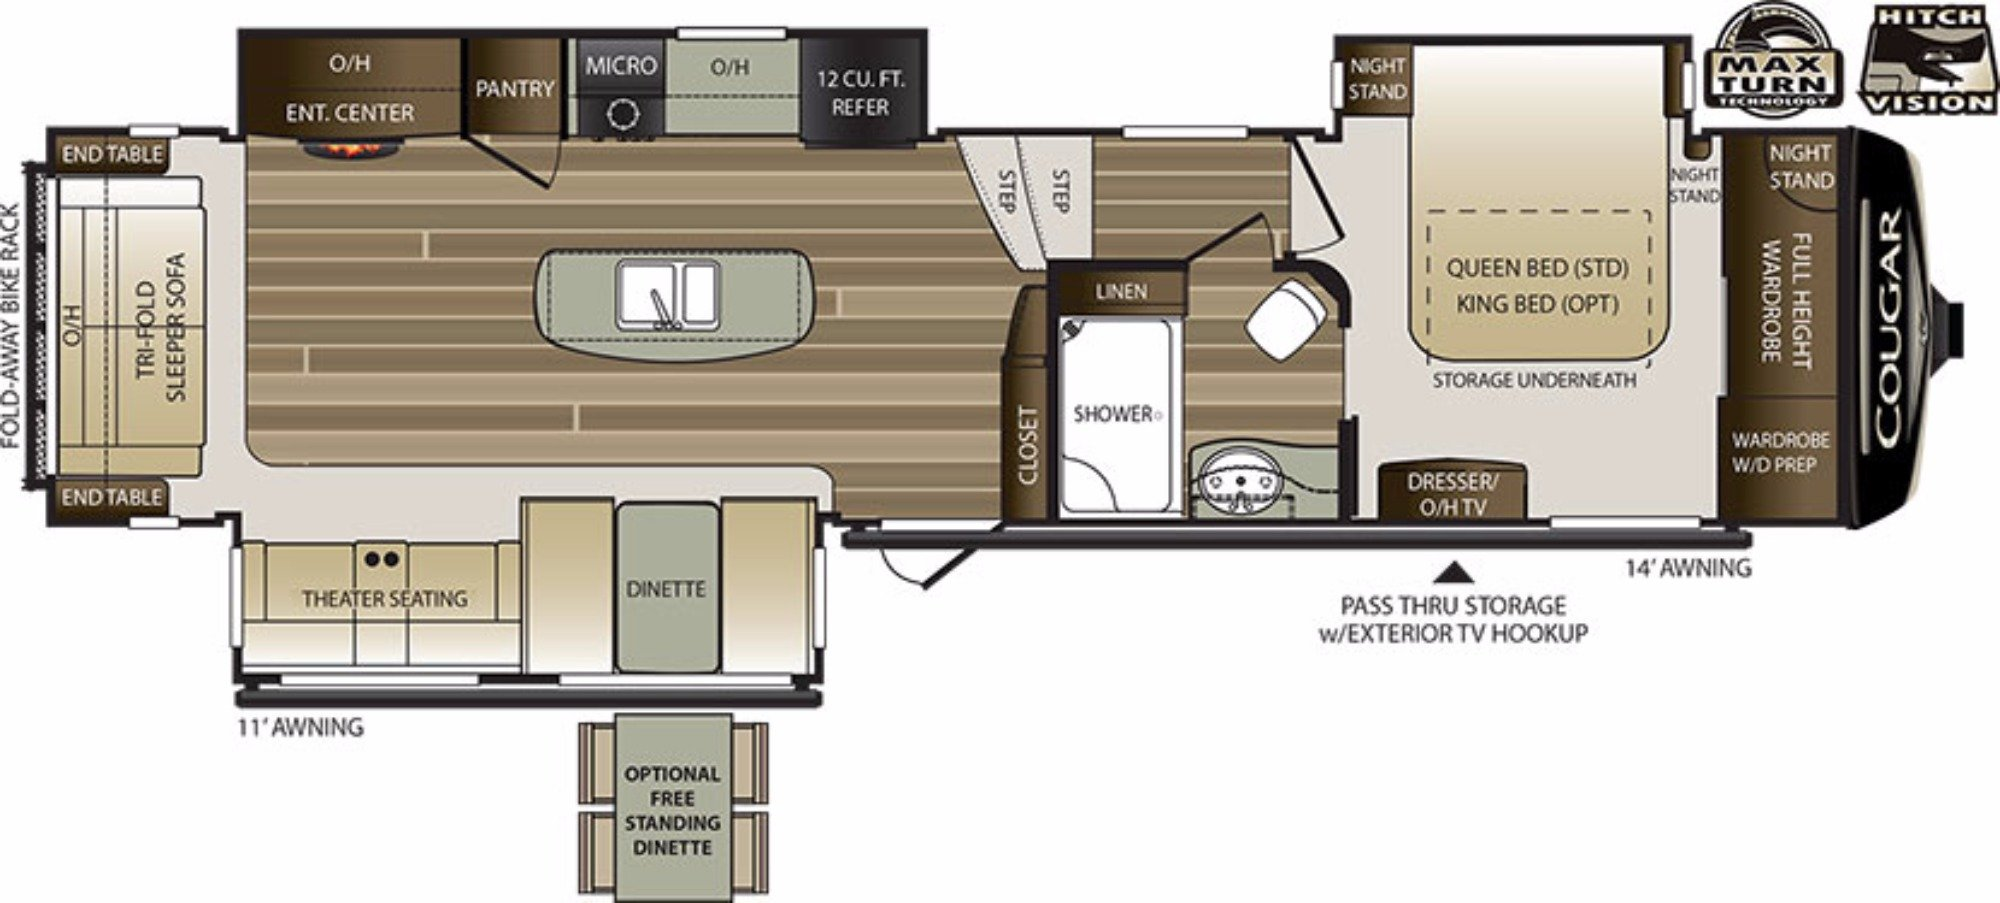 View Floor Plan for 2018 KEYSTONE COUGAR 344MKS